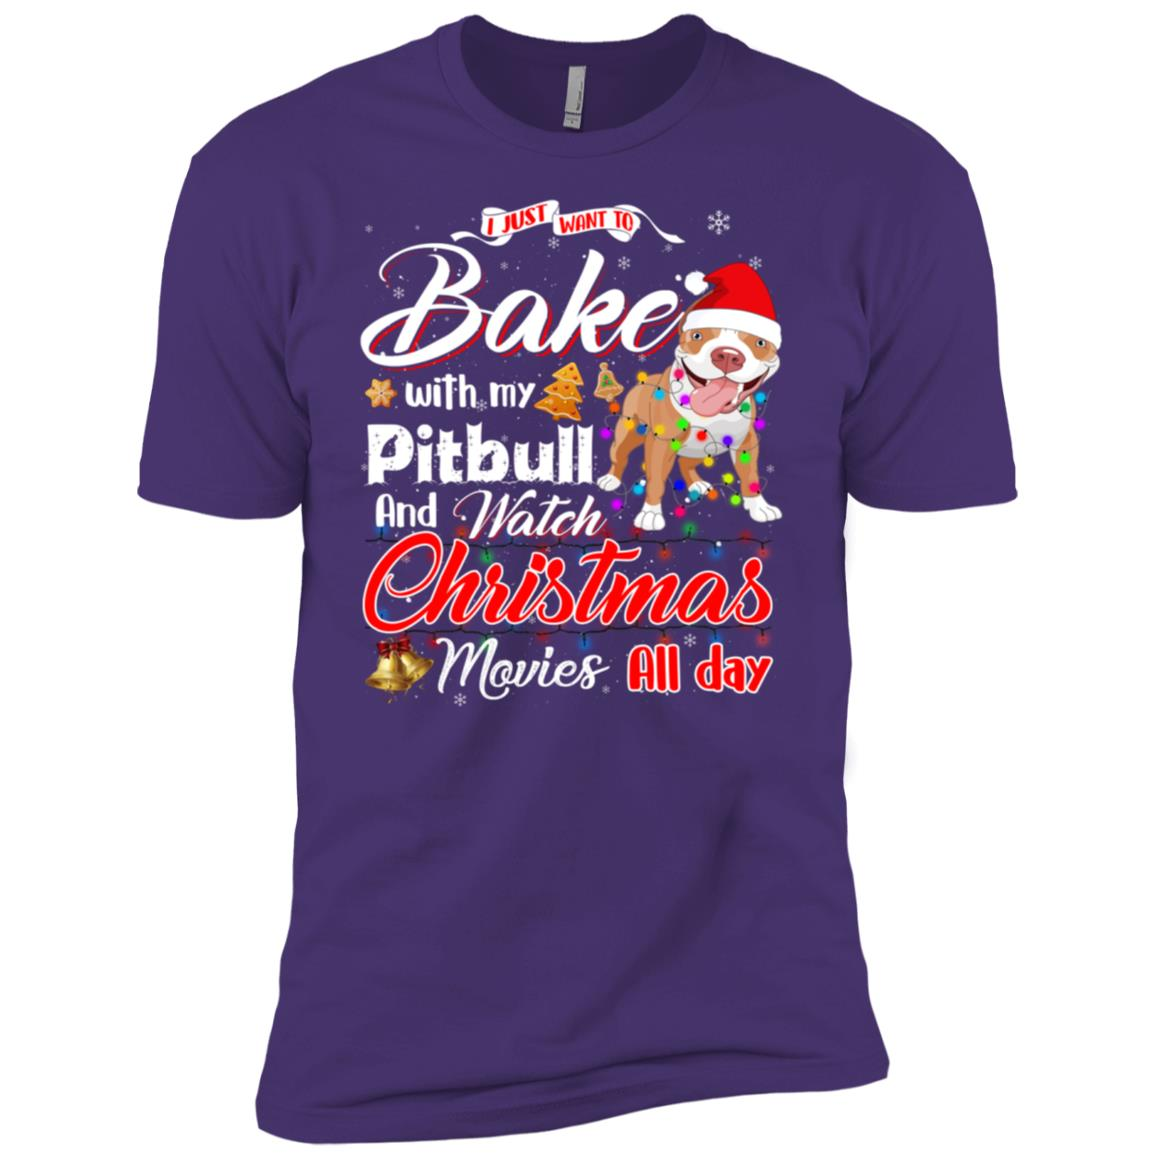 Bake Stuff with Pitbull Watch Christmas Movies Men Short Sleeve T-Shirt